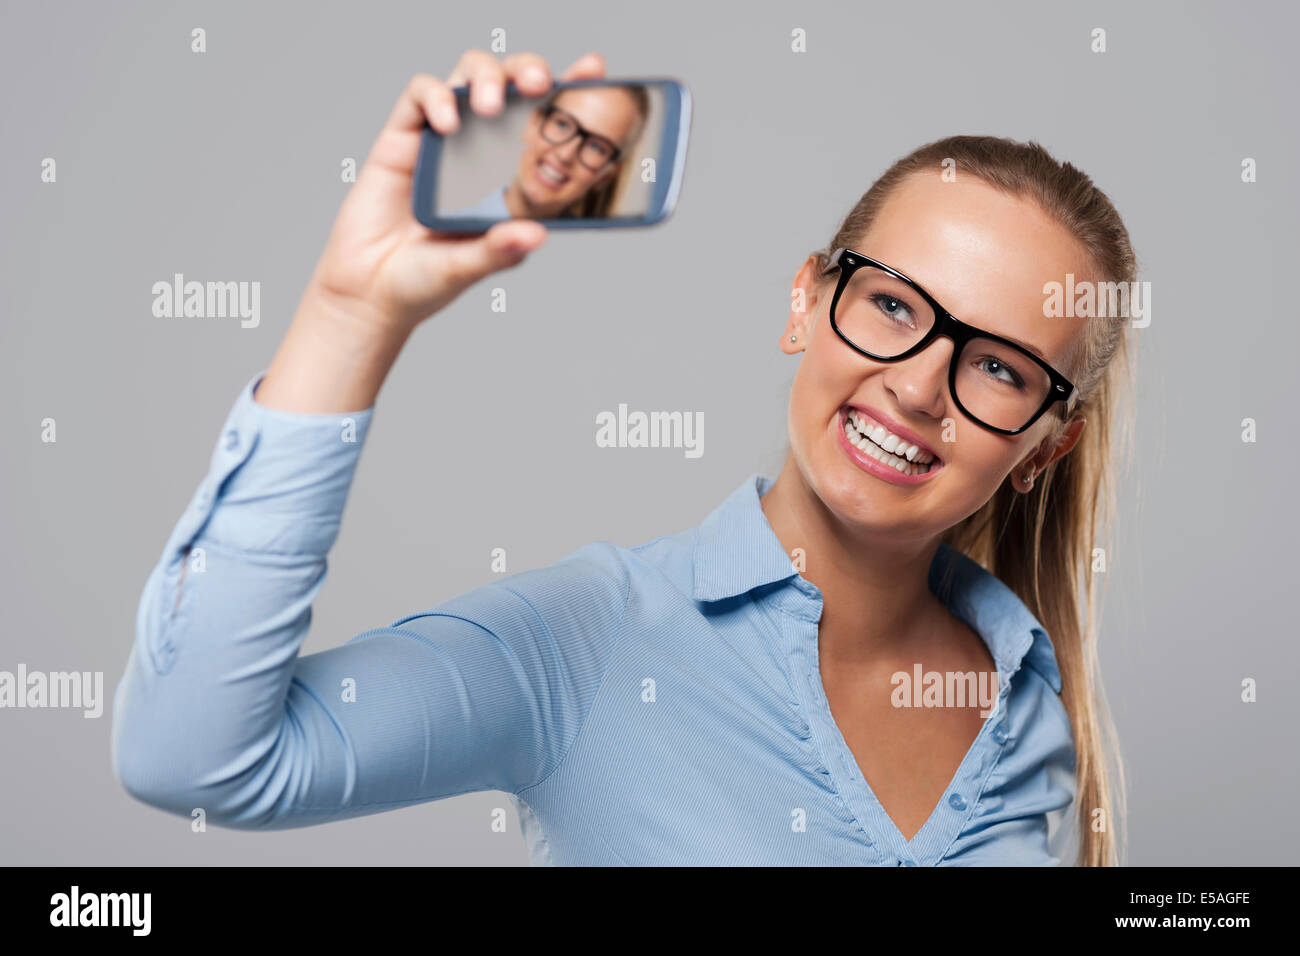 Blonde businesswoman wearing glasses taking self portrait photo, Debica, Poland - Stock Image